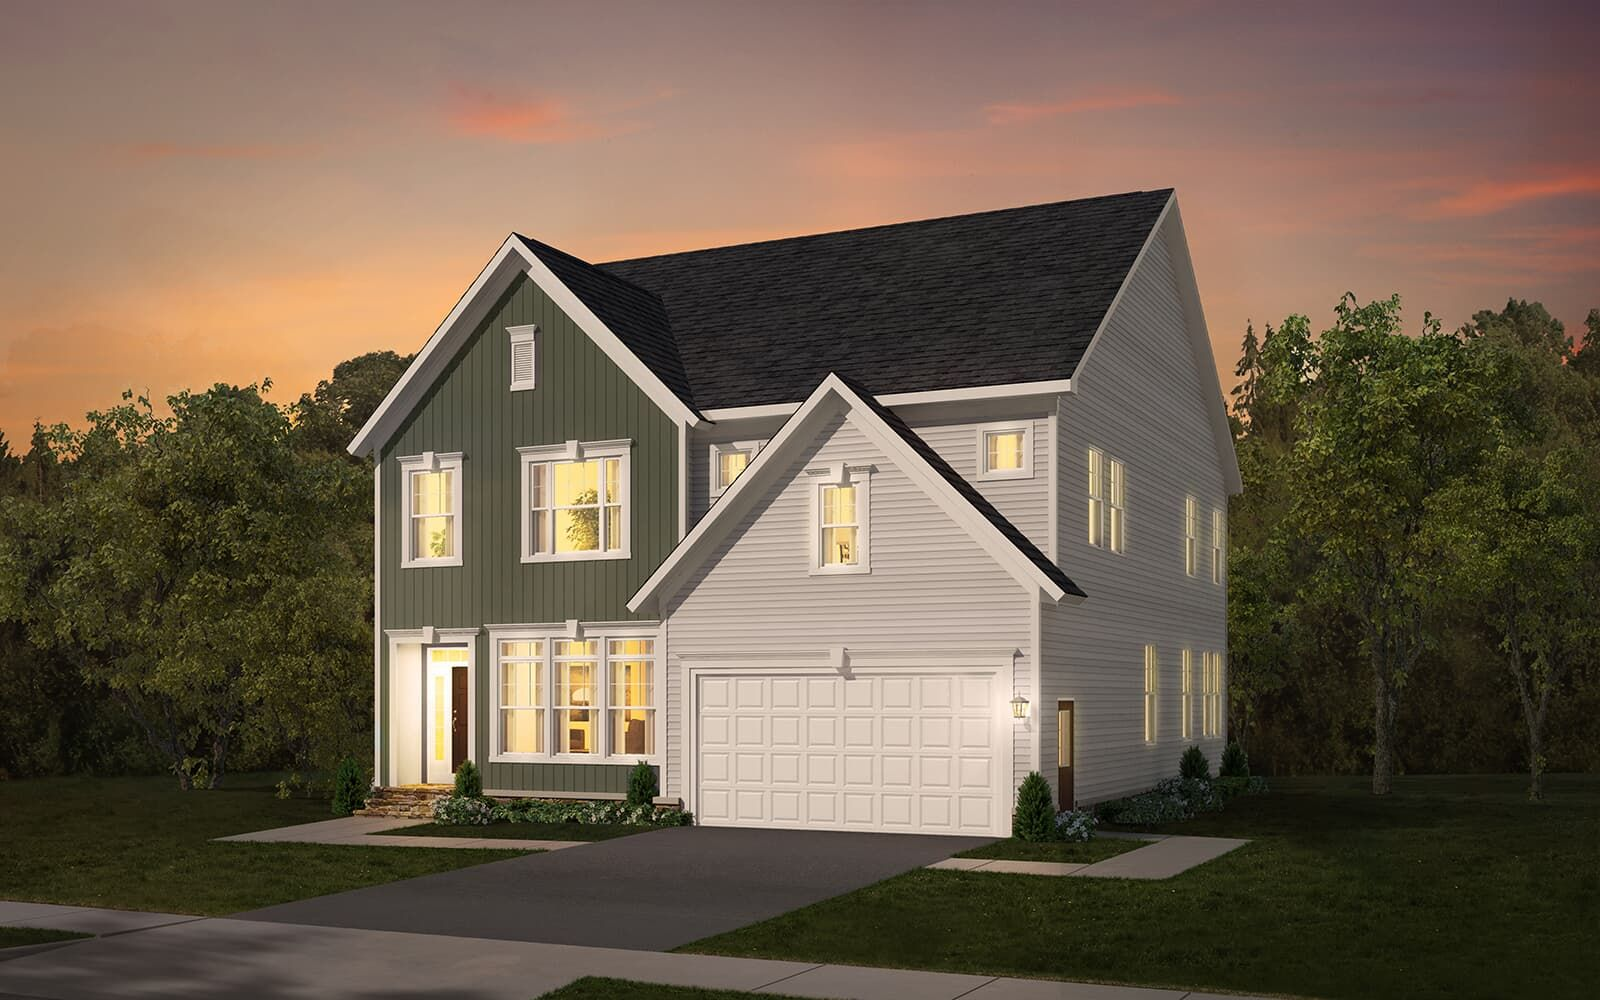 Exterior:Elevation 1 of the Beckner a home design offered at Two Rivers in Odenton MD by Brookfield Residential